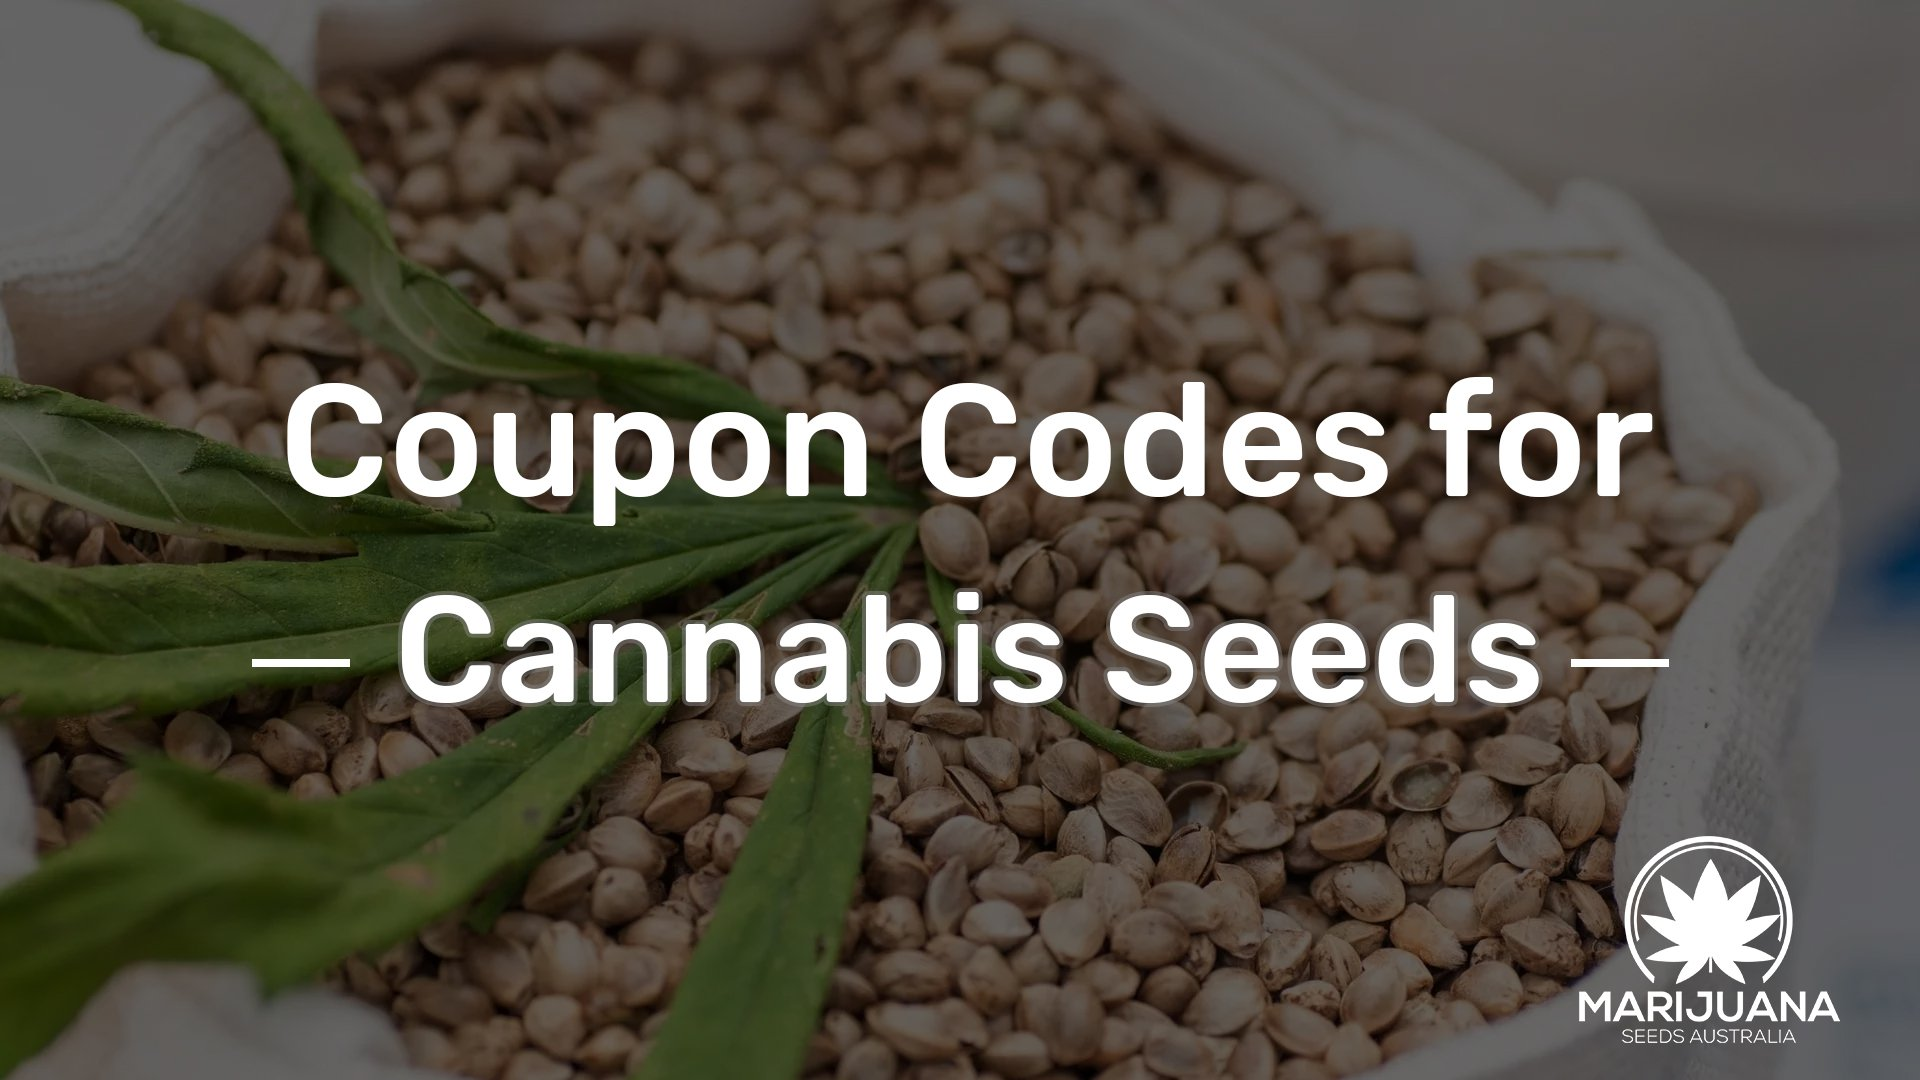 Coupon Codes for Cannabis Seeds